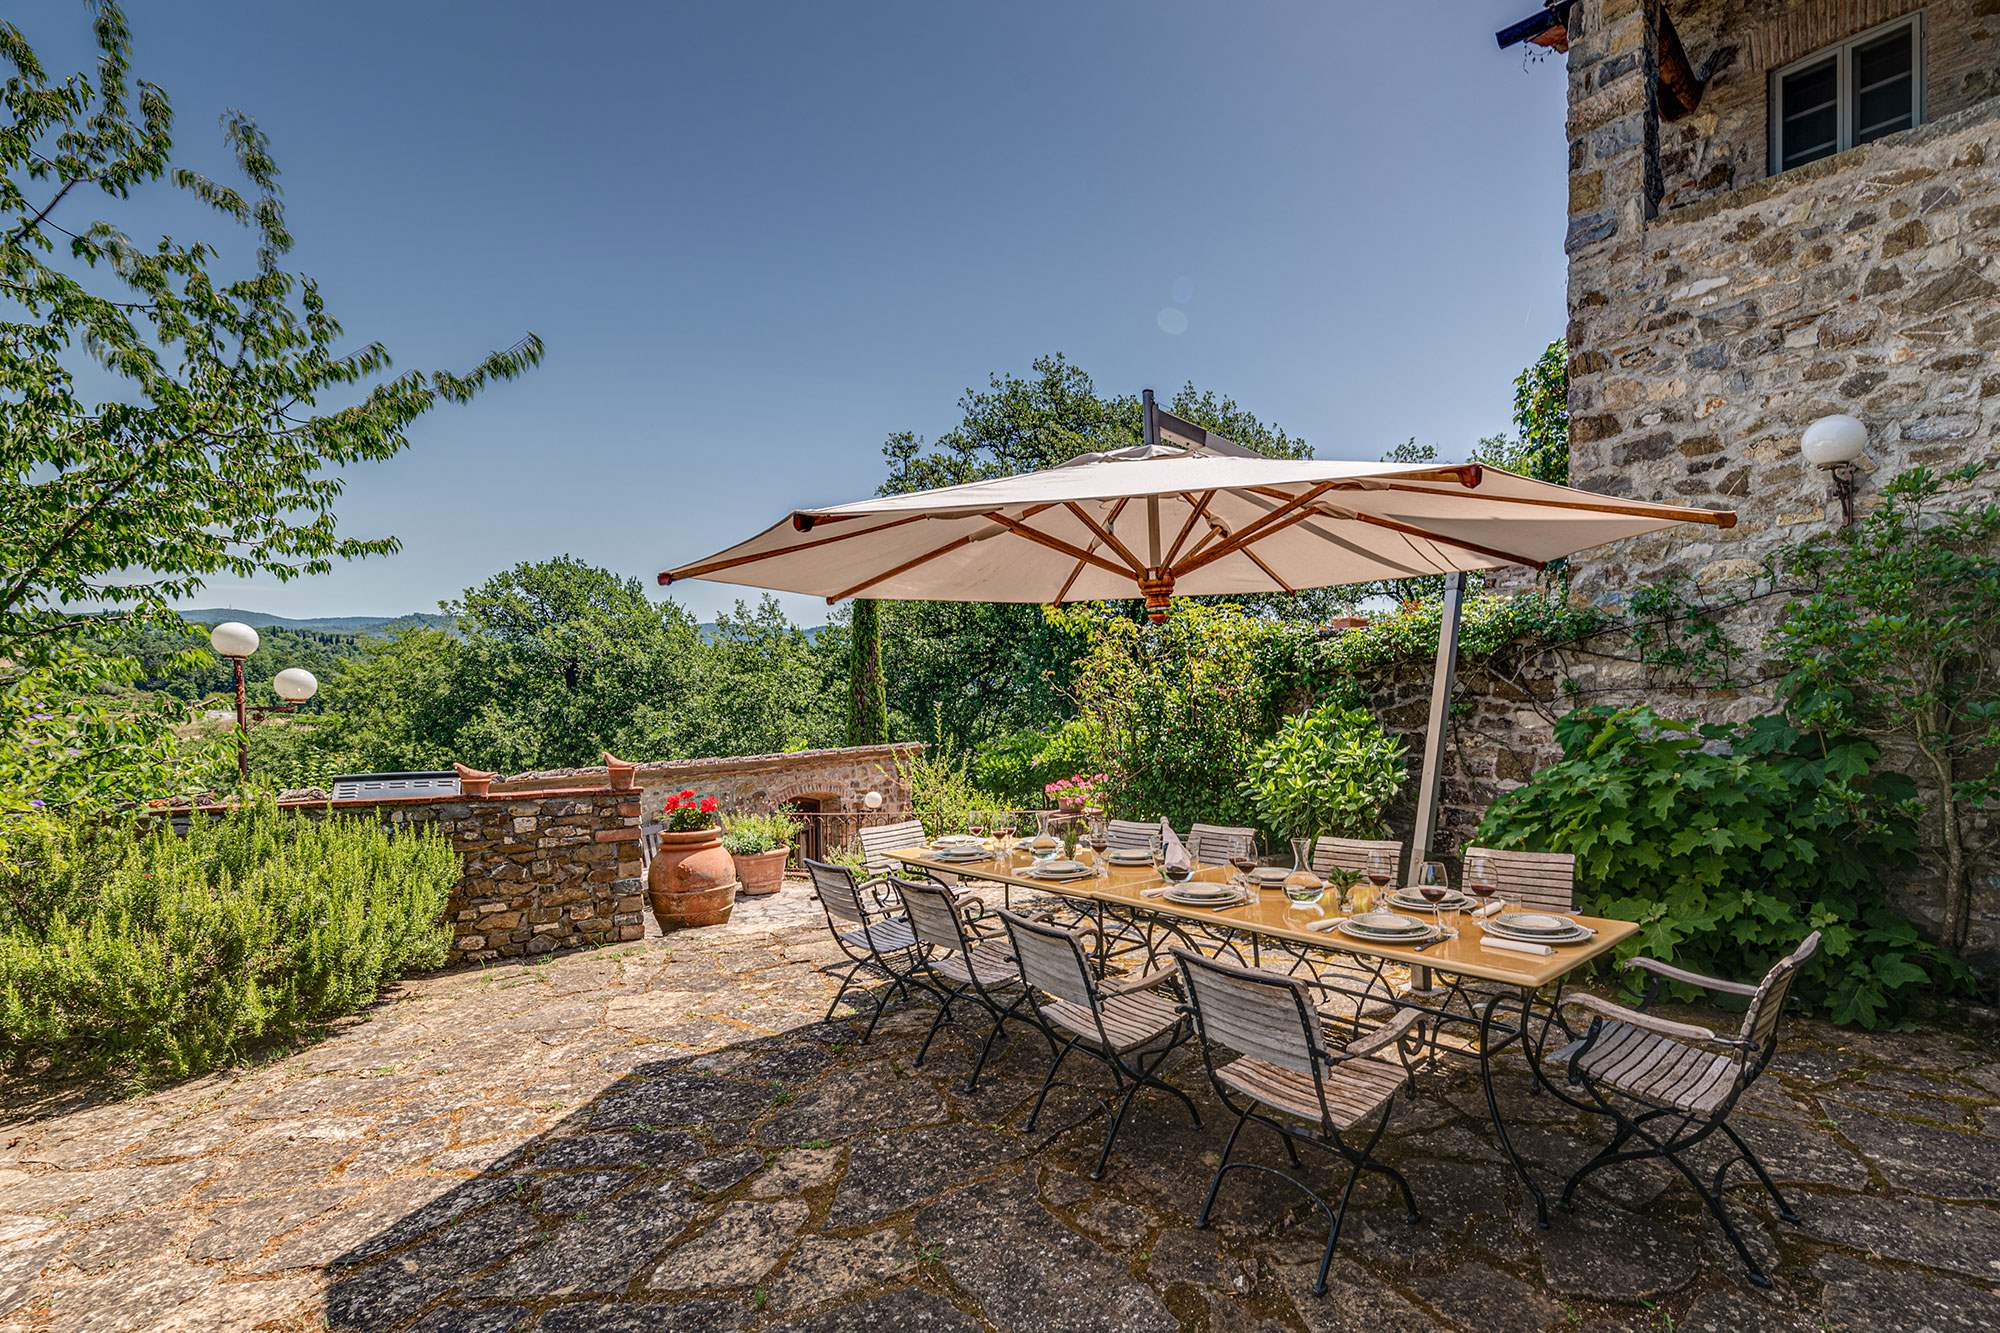 Villa Claudia, 5 Bedroom rate, 5 bedroom villa in Chianti & Countryside, Tuscany Photo #4